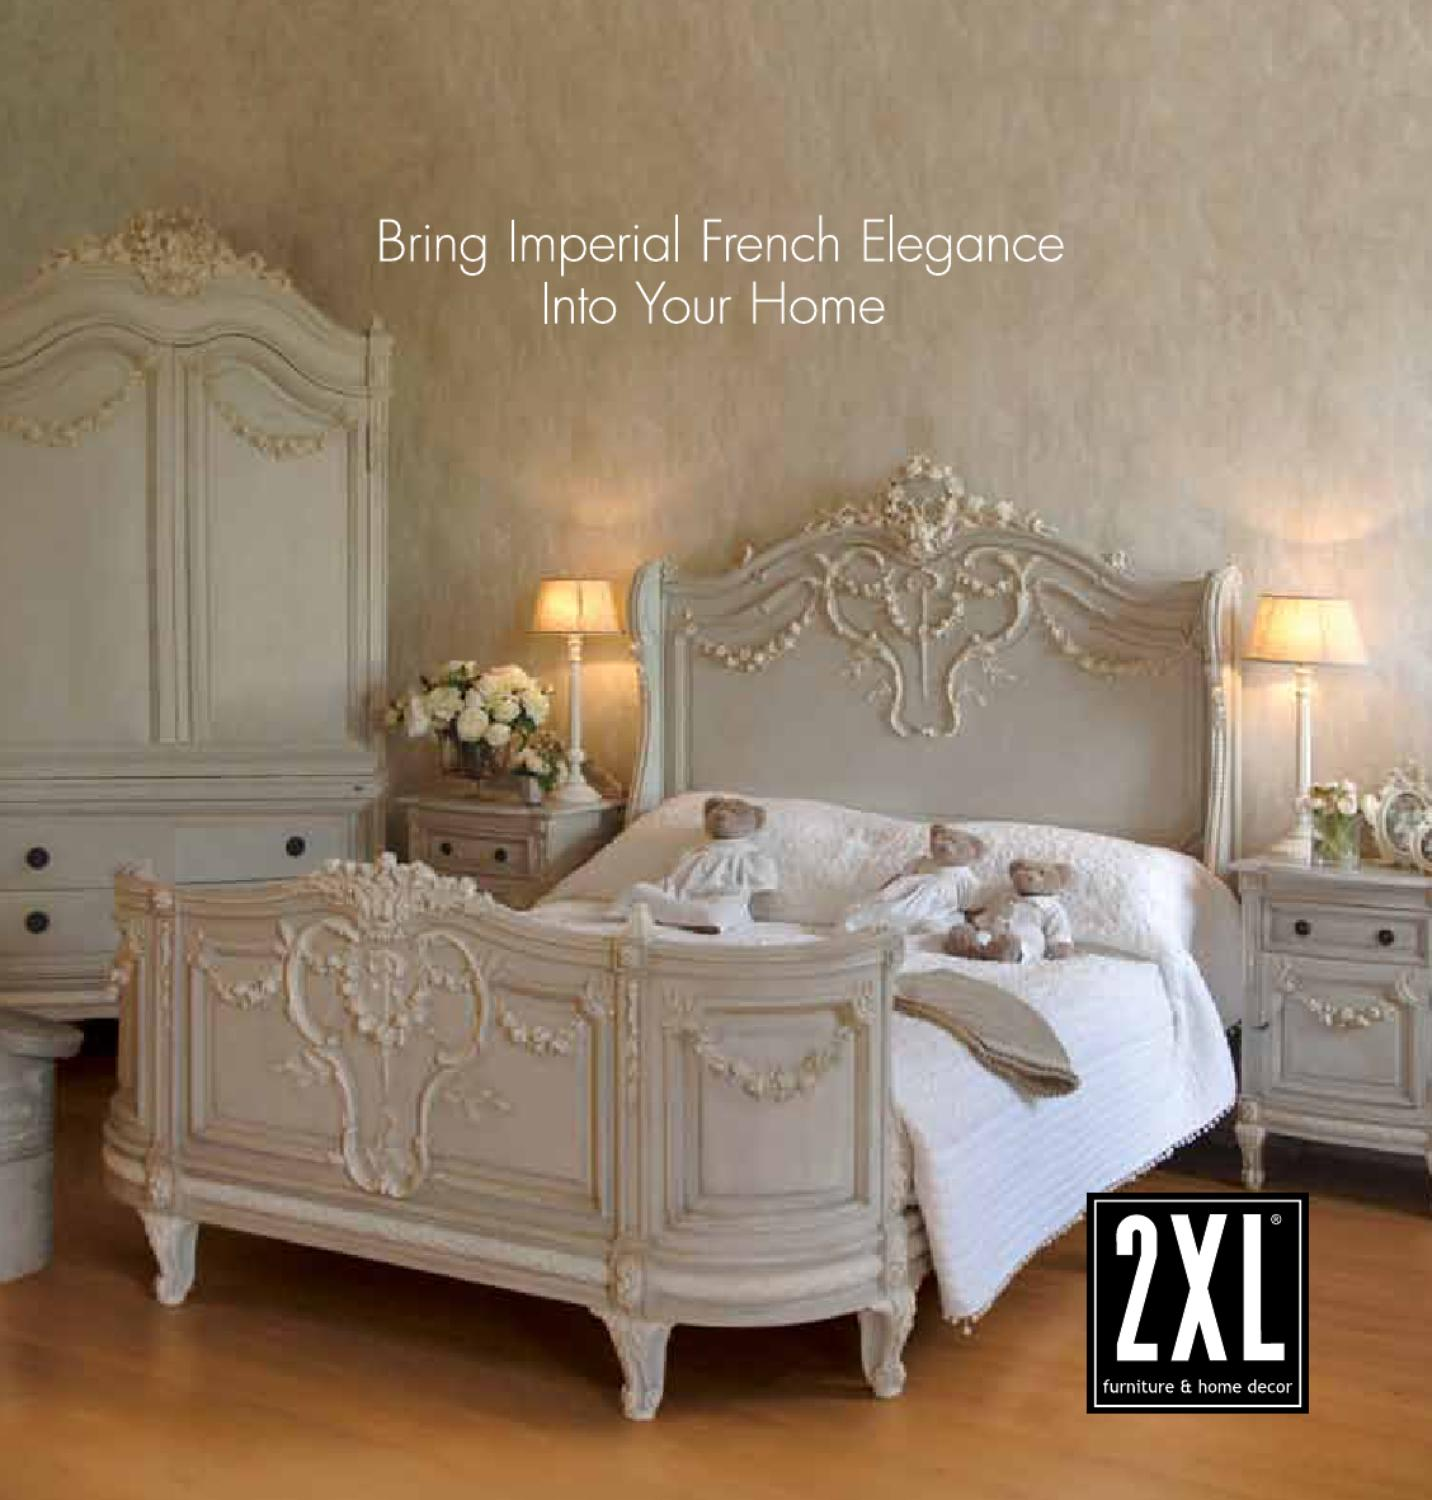 2xl furniture home decor by hot media issuu for Home furnishings and decor